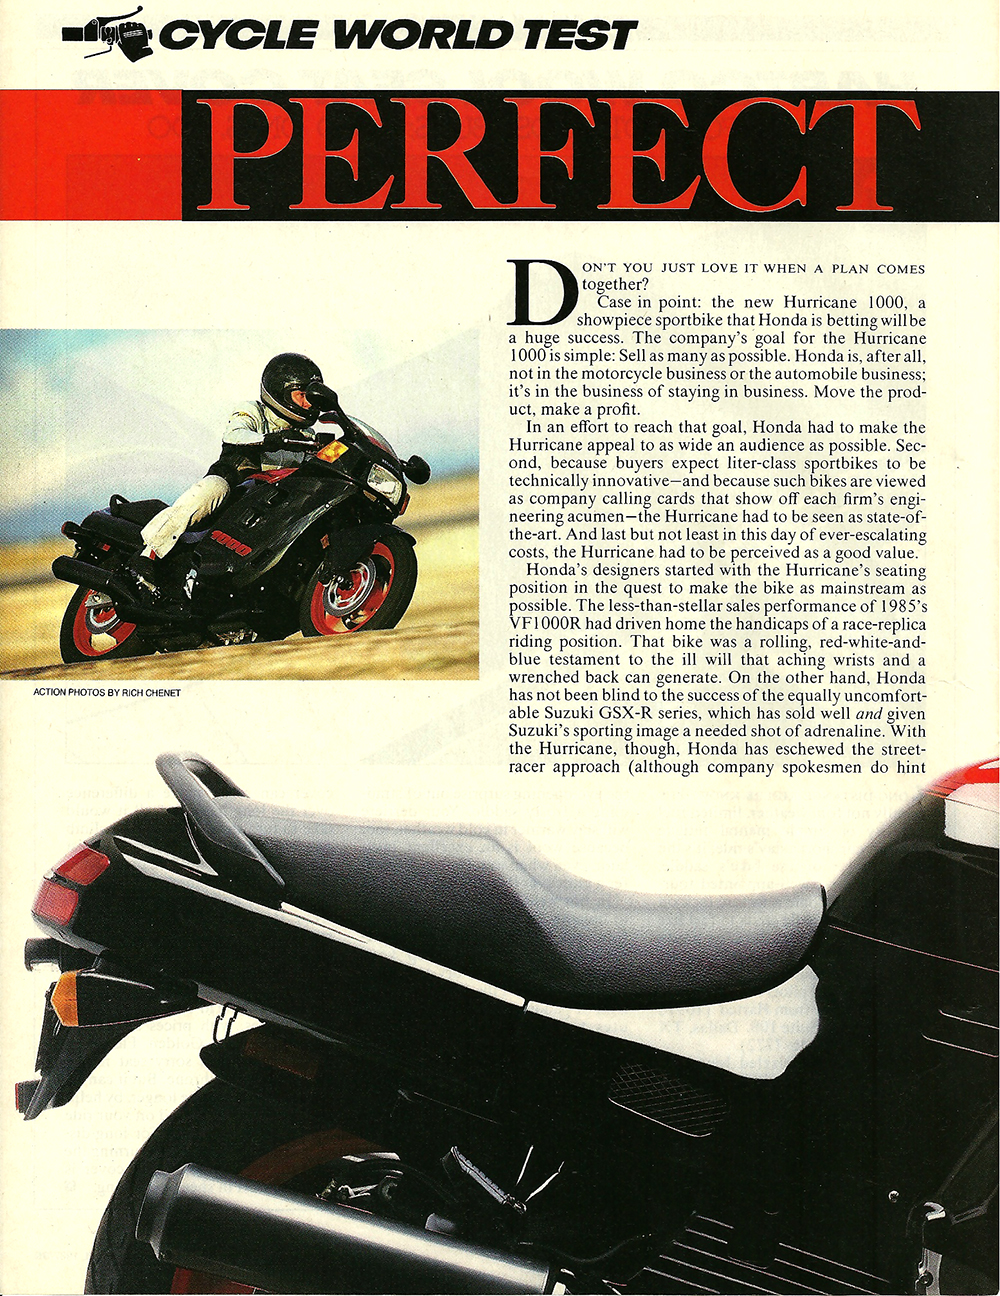 1987 Honda Hurricane 1000 road test 01.jpg